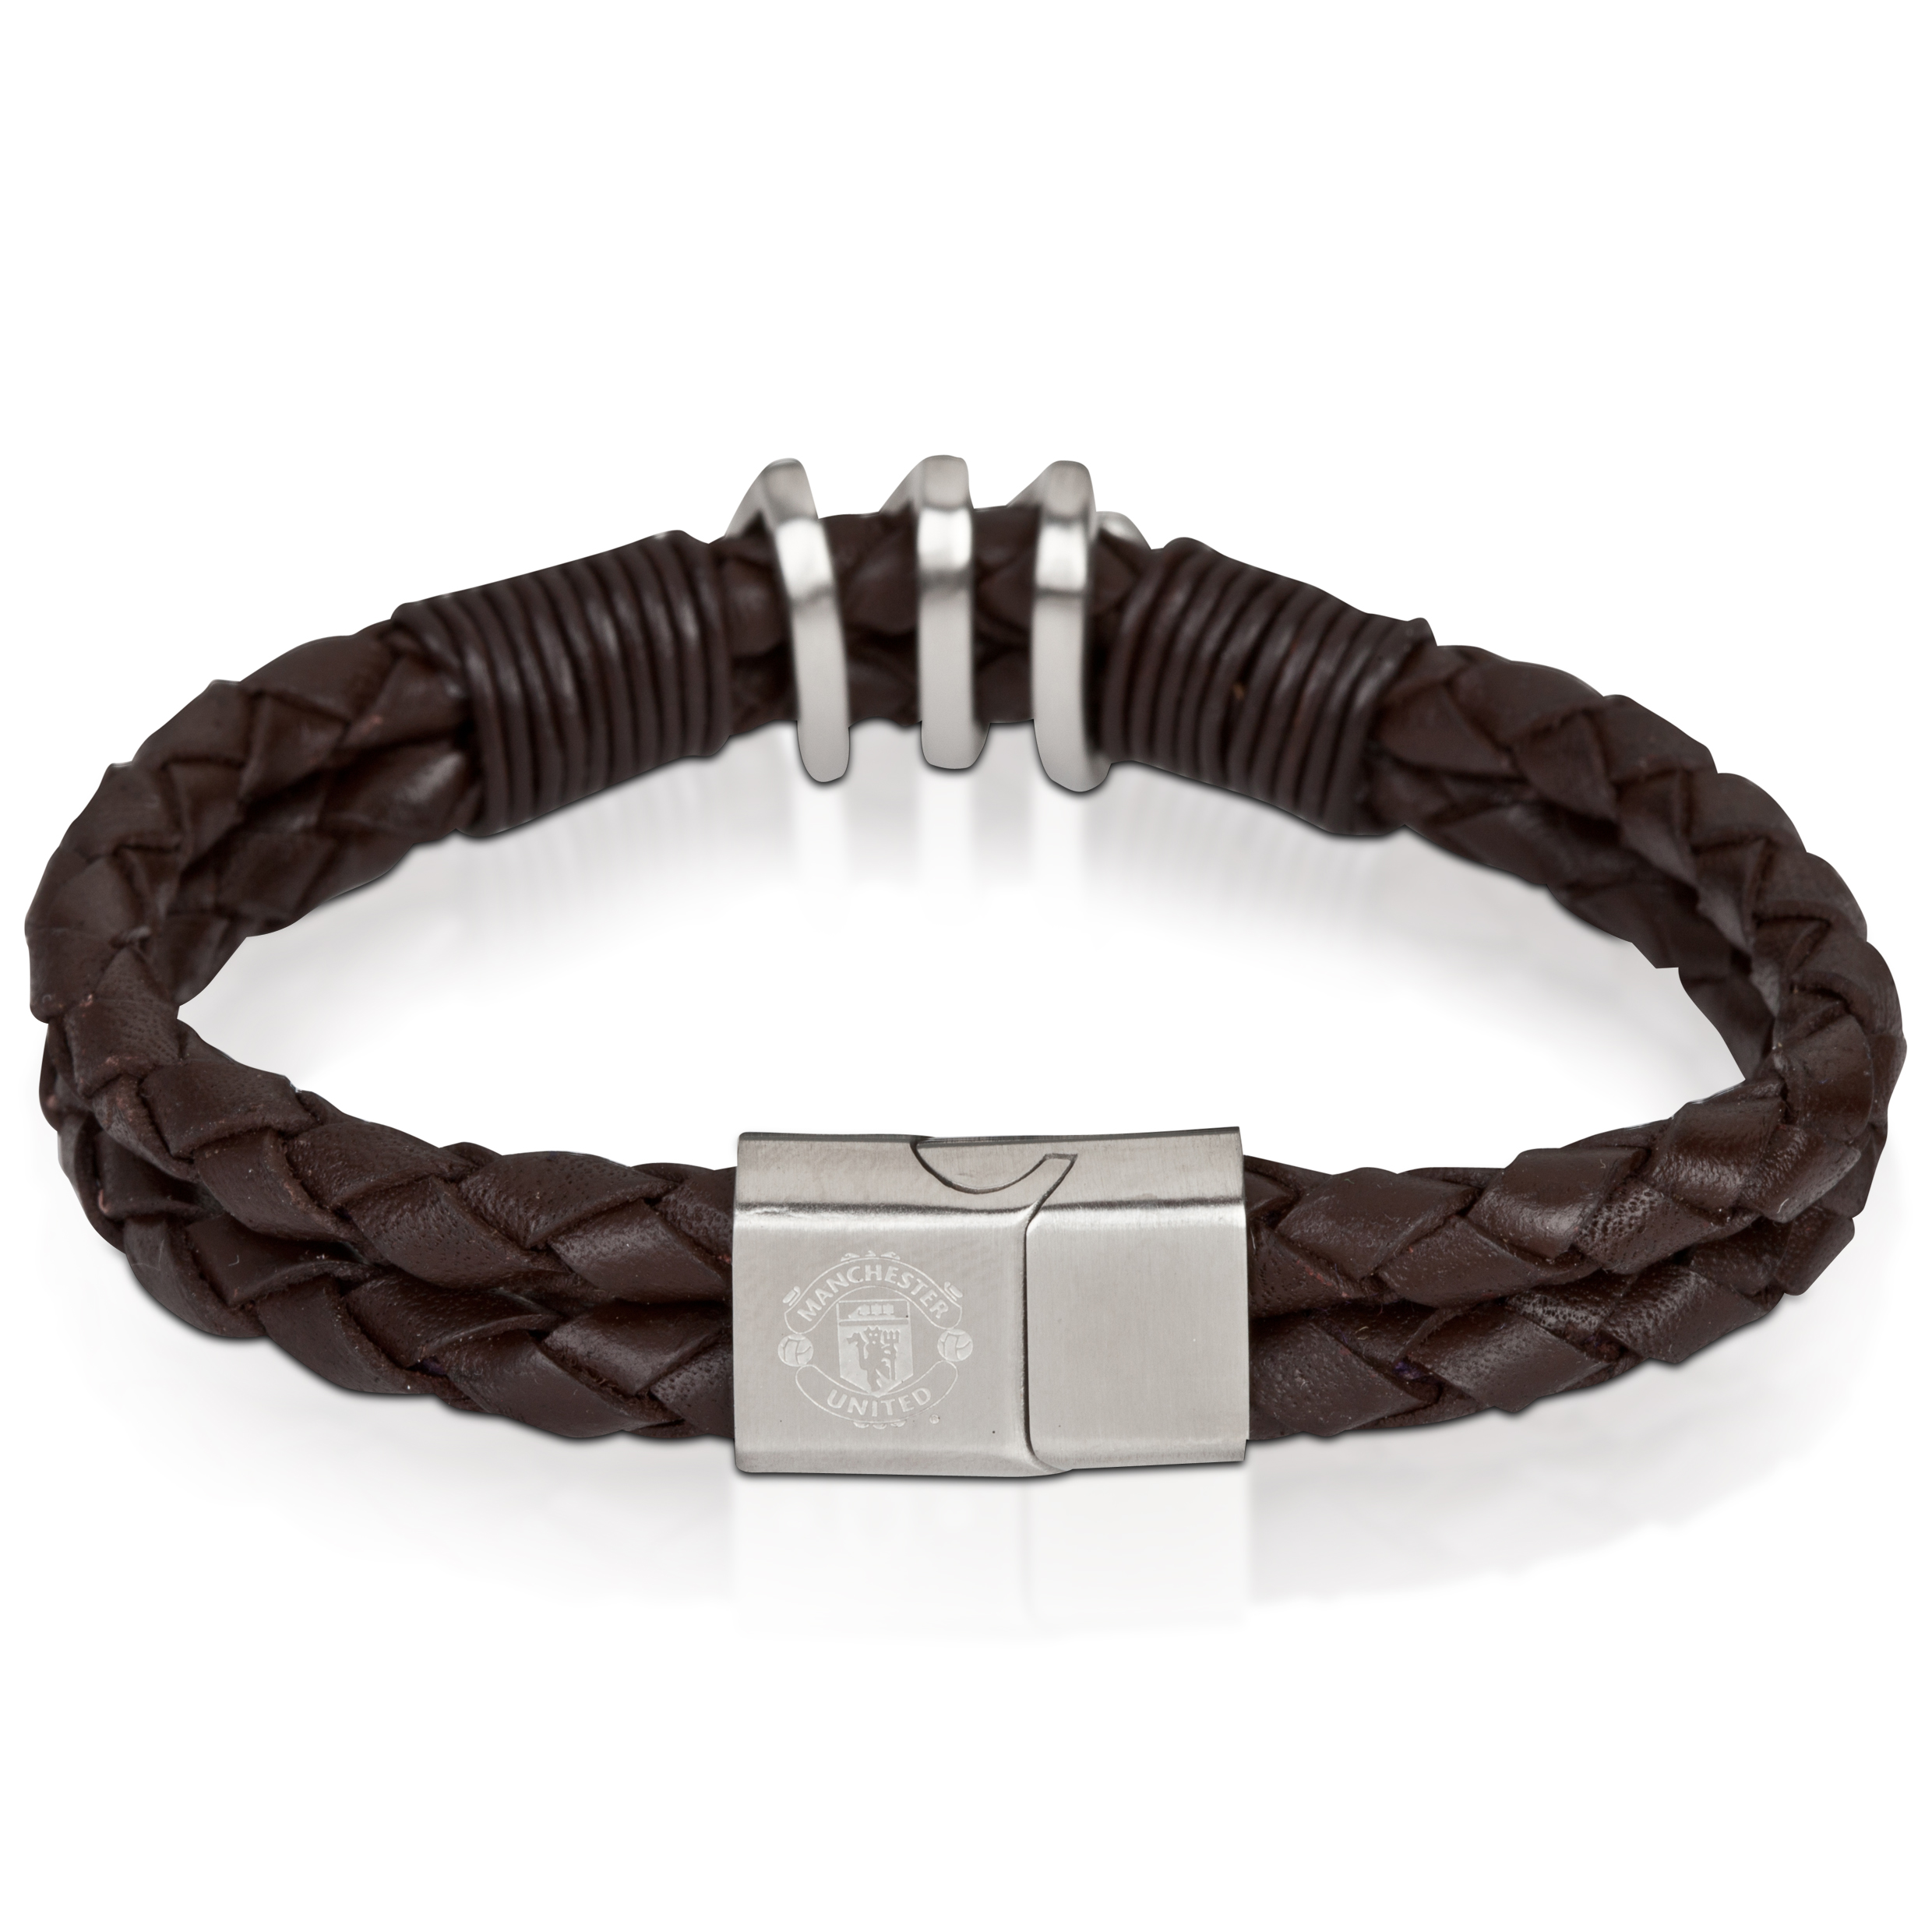 Manchester United Brown Leather Bracelet - Stainless Steel